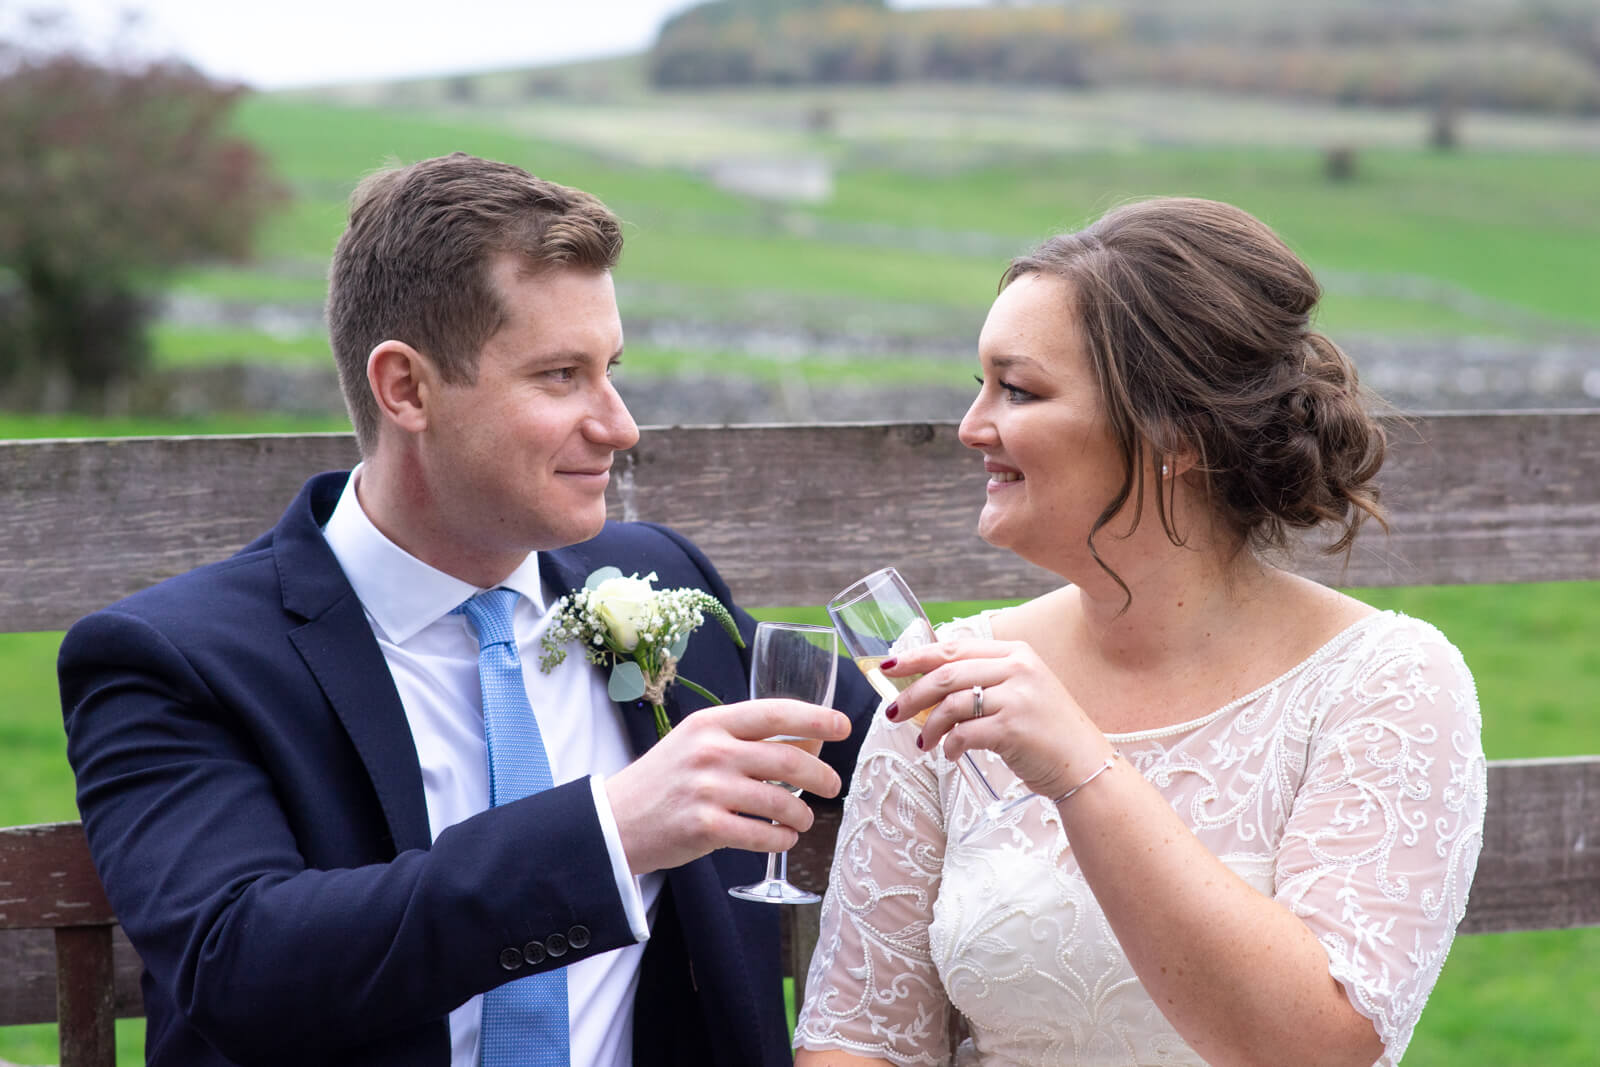 Bride and groom clink glasses and smile at each other while sitting outside